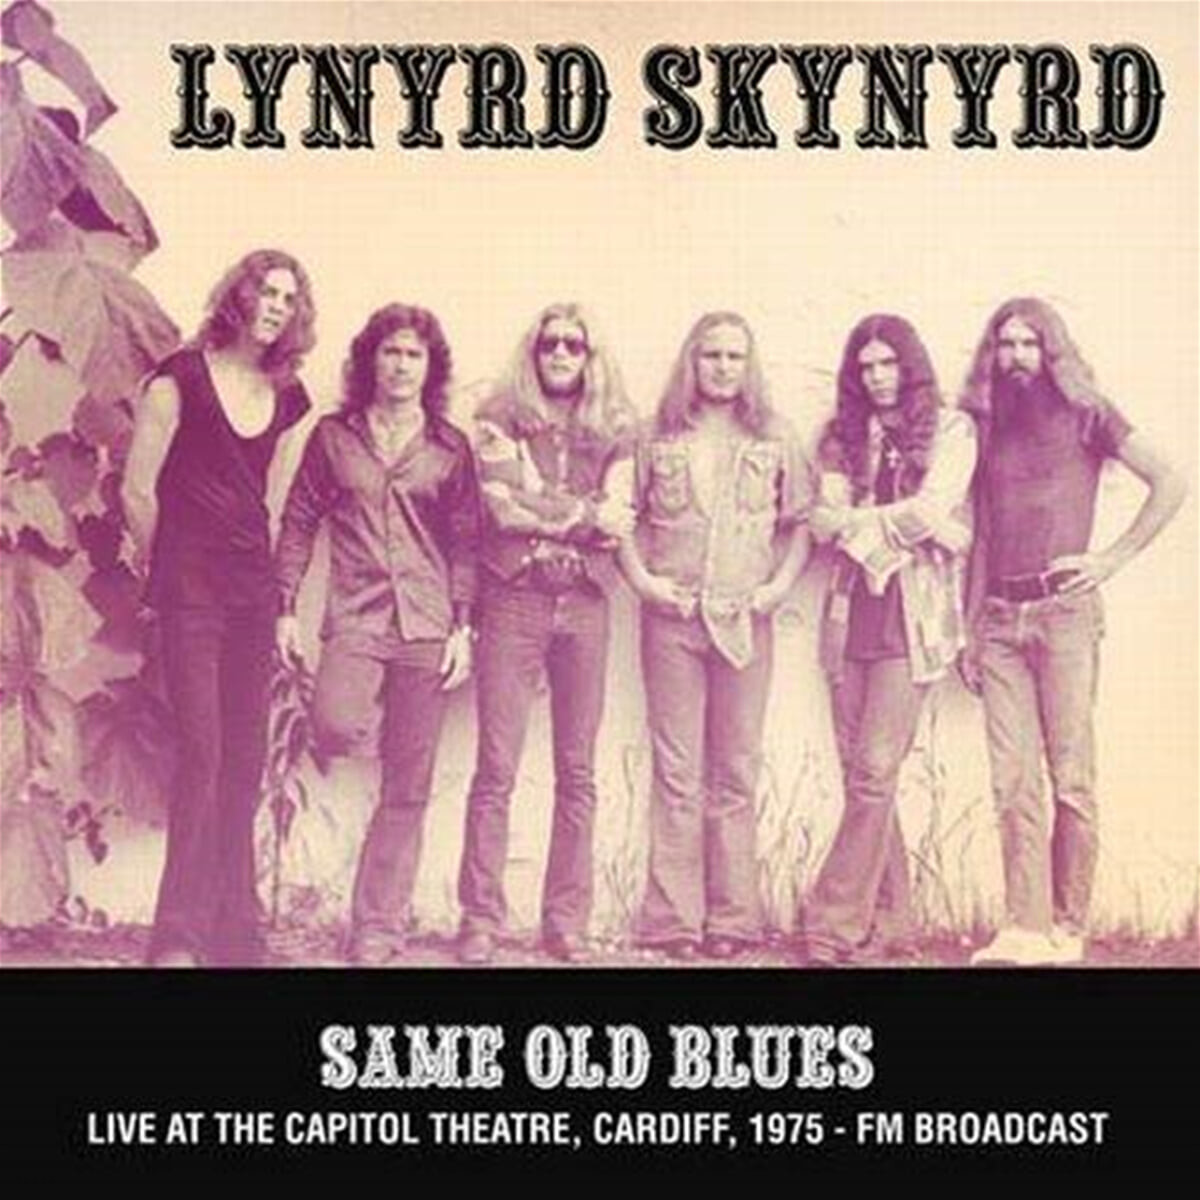 Lynyrd Skynyrd (레너드 스키너드) - Same Old Blues : Live At The Capitol Theatre, Cardiff, 1975 - FM Broadcast [LP]